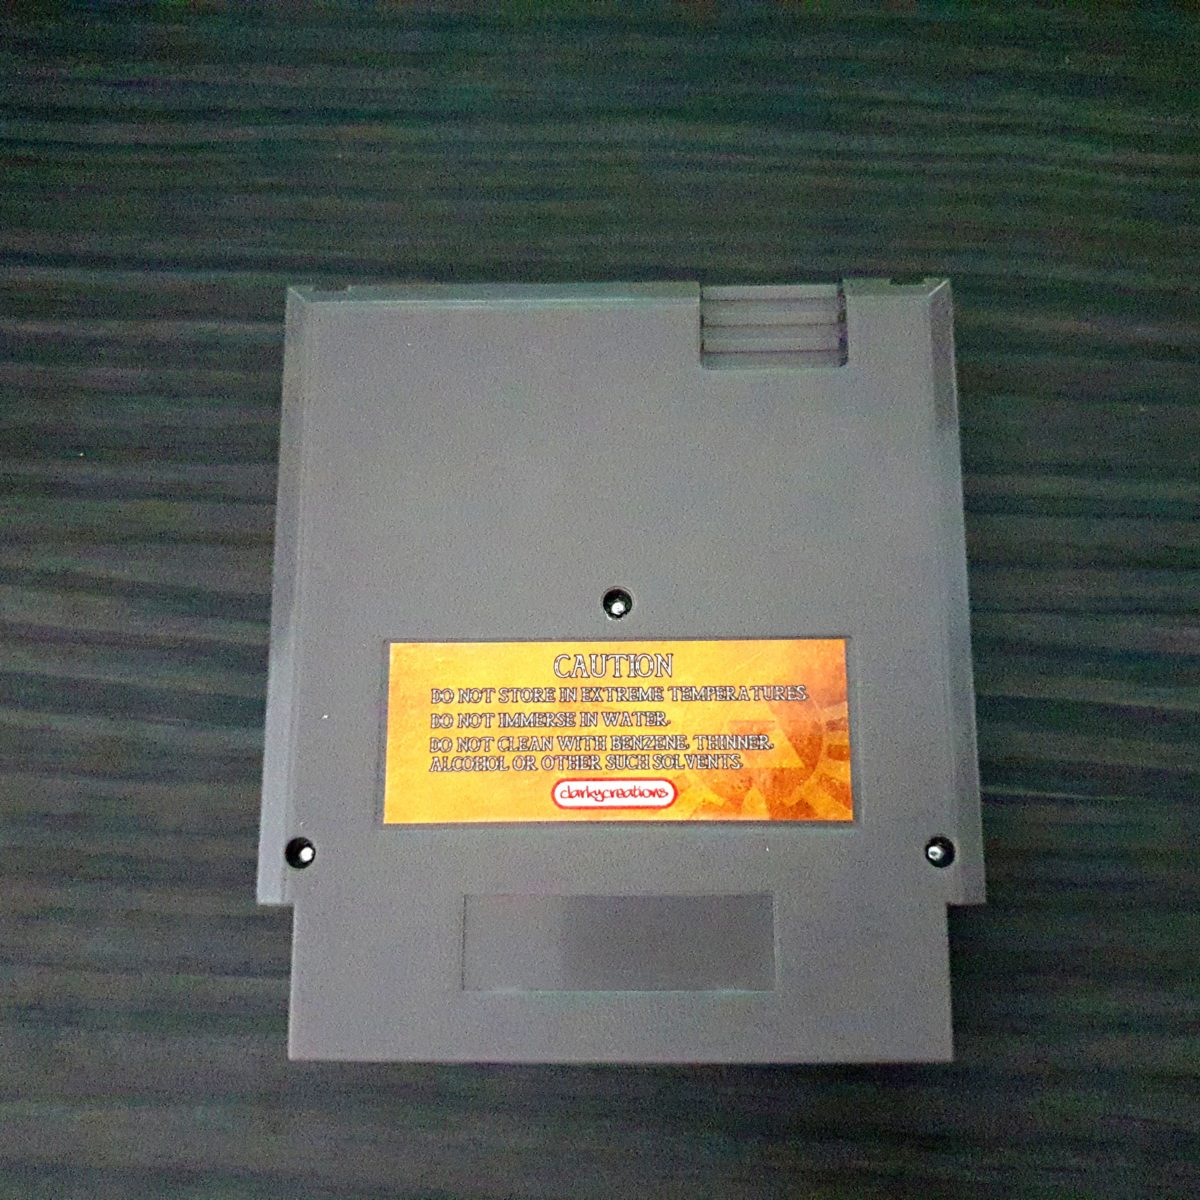 The Legend of Zelda Journey of a Day ClarkyCreations NES